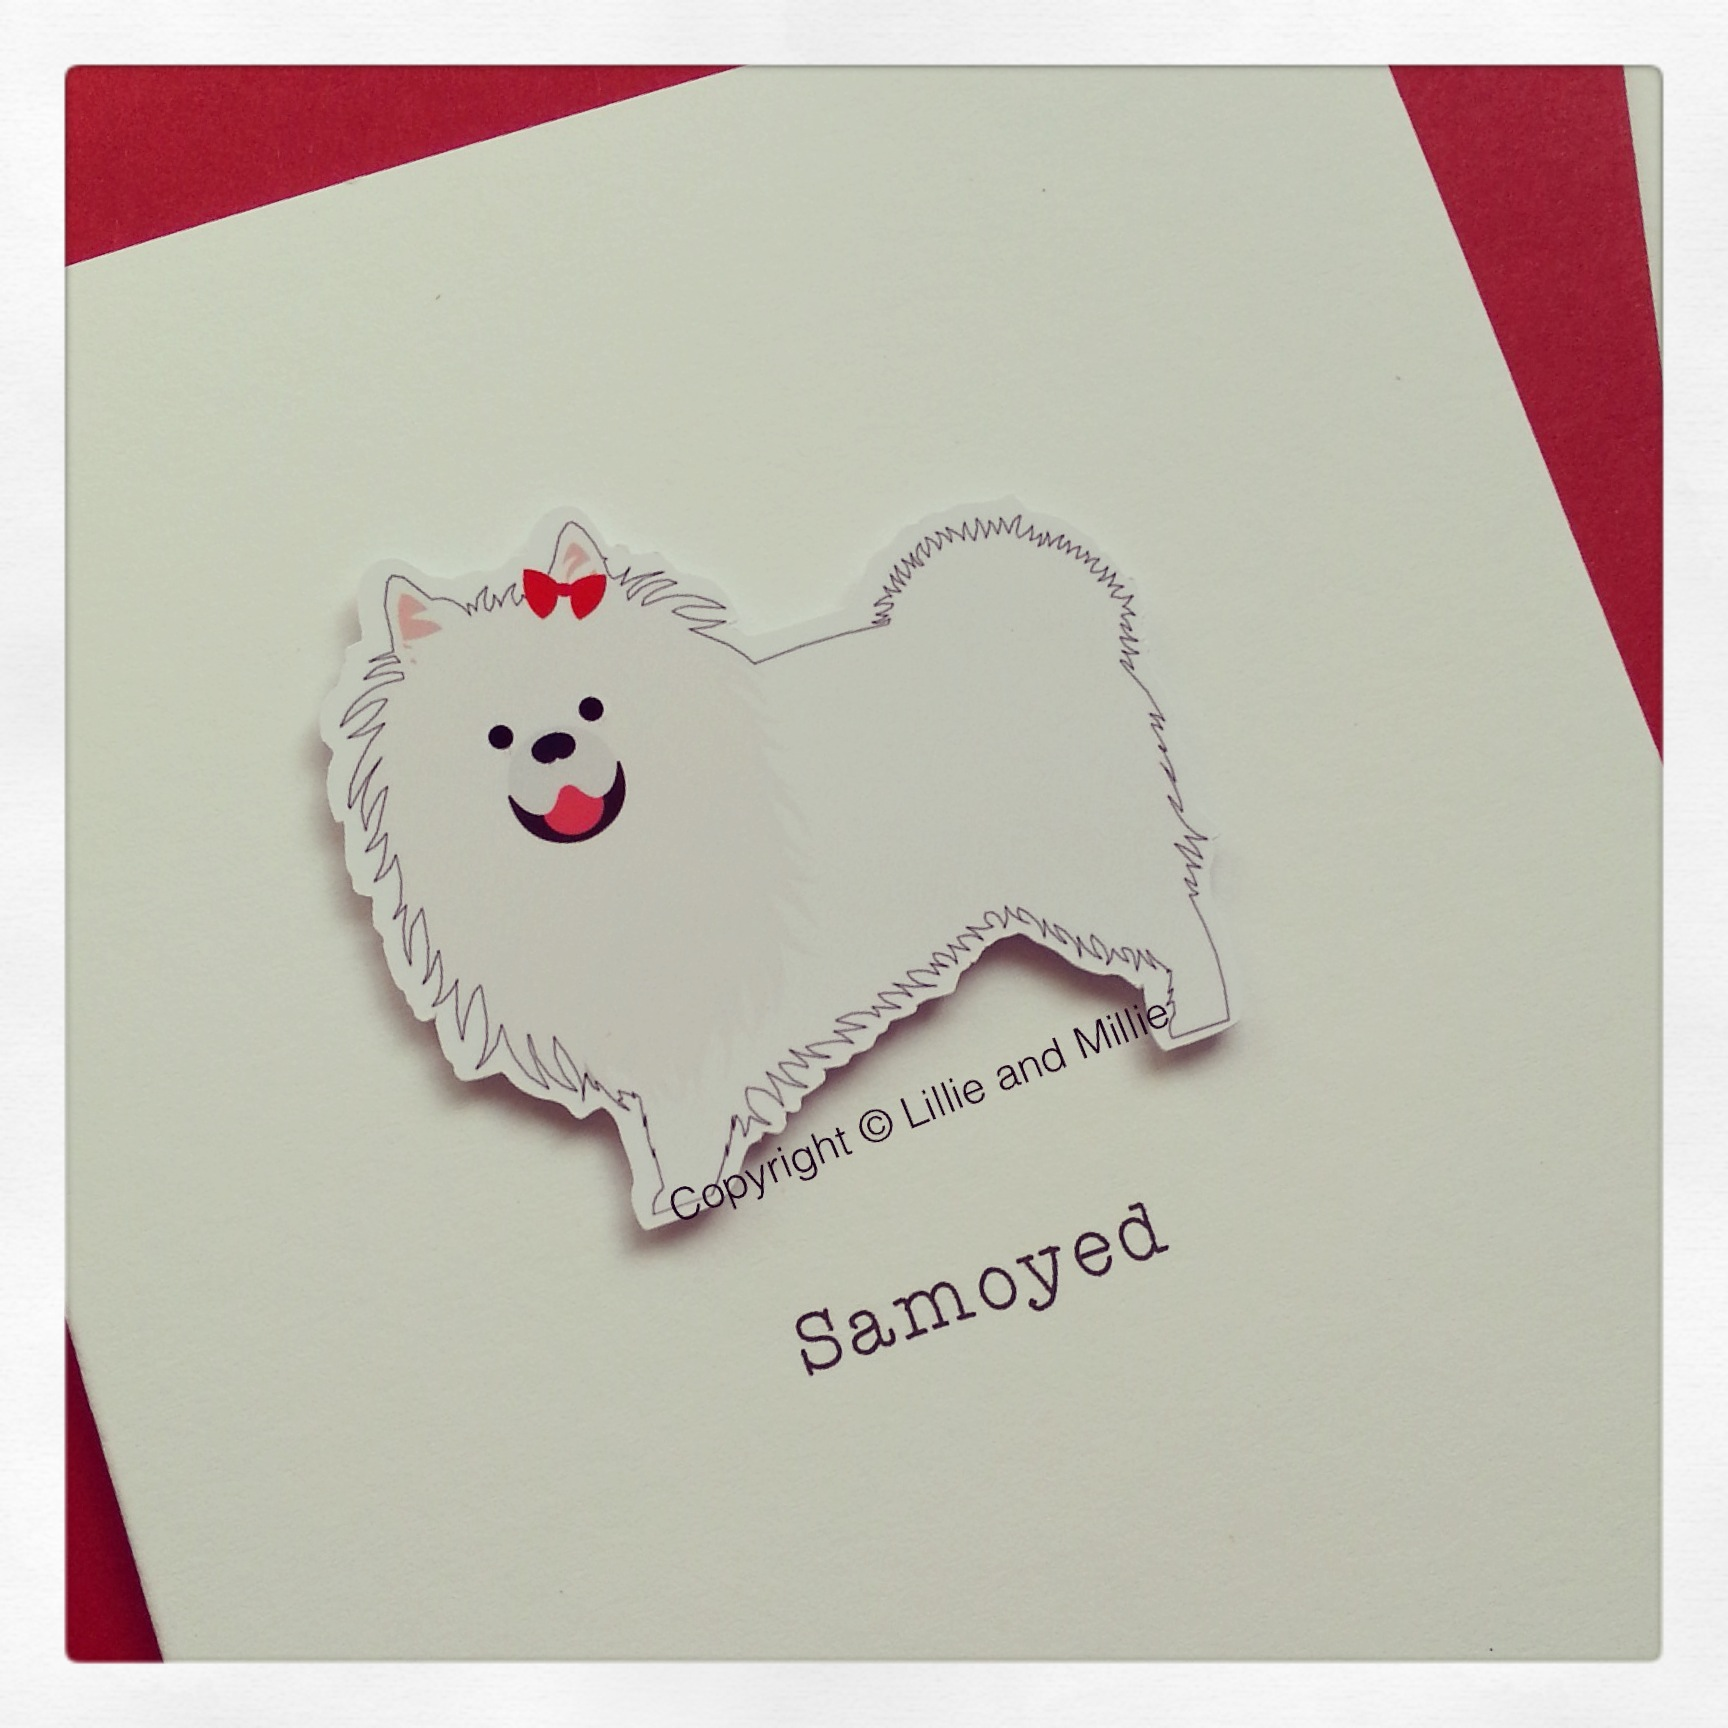 Samoyed Dog Greetings Card